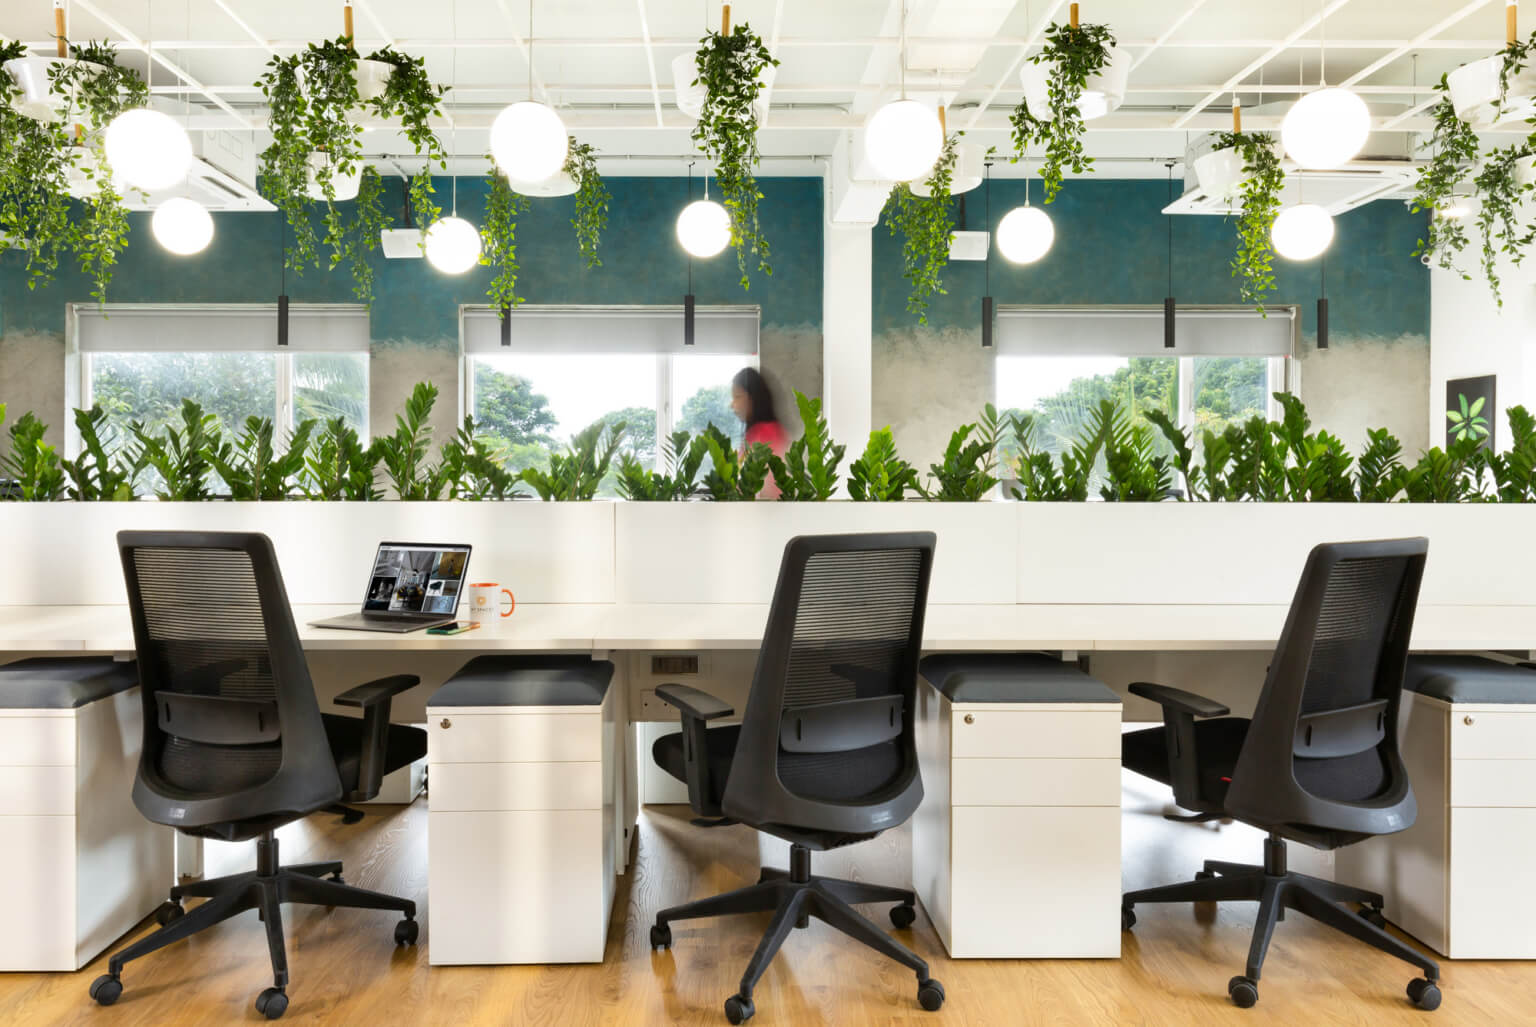 Why invest in greening your office 5